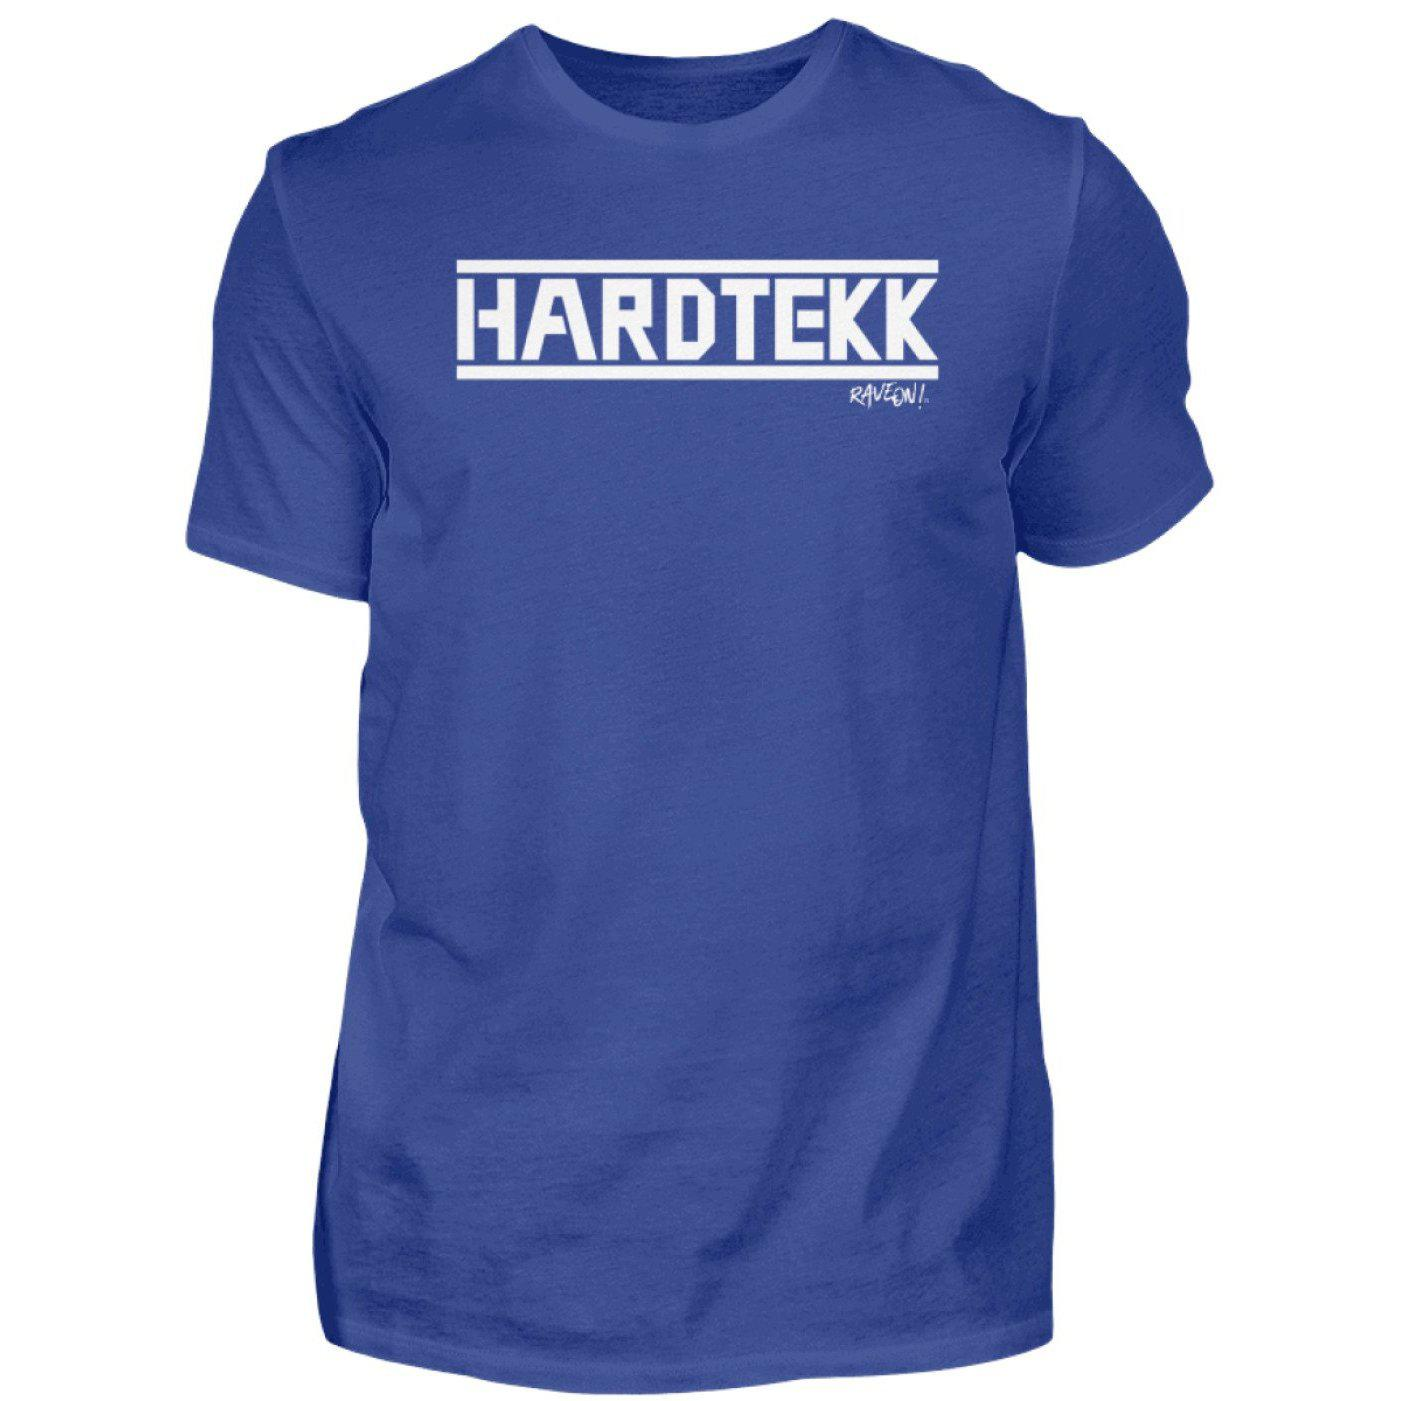 HARDTEKK - Rave On!® - Herren Shirt-Herren Basic T-Shirt-Royal Blue-S-Rave-On! I www.rave-on.shop I Deine Rave & Techno Szene Shop I Design - HARDTEKK - Rave On!®, Global recommendation, hardtekk, on, rave, techno, Tekk, tekkno - Sexy Festival Streetwear , Clubwear & Raver Style